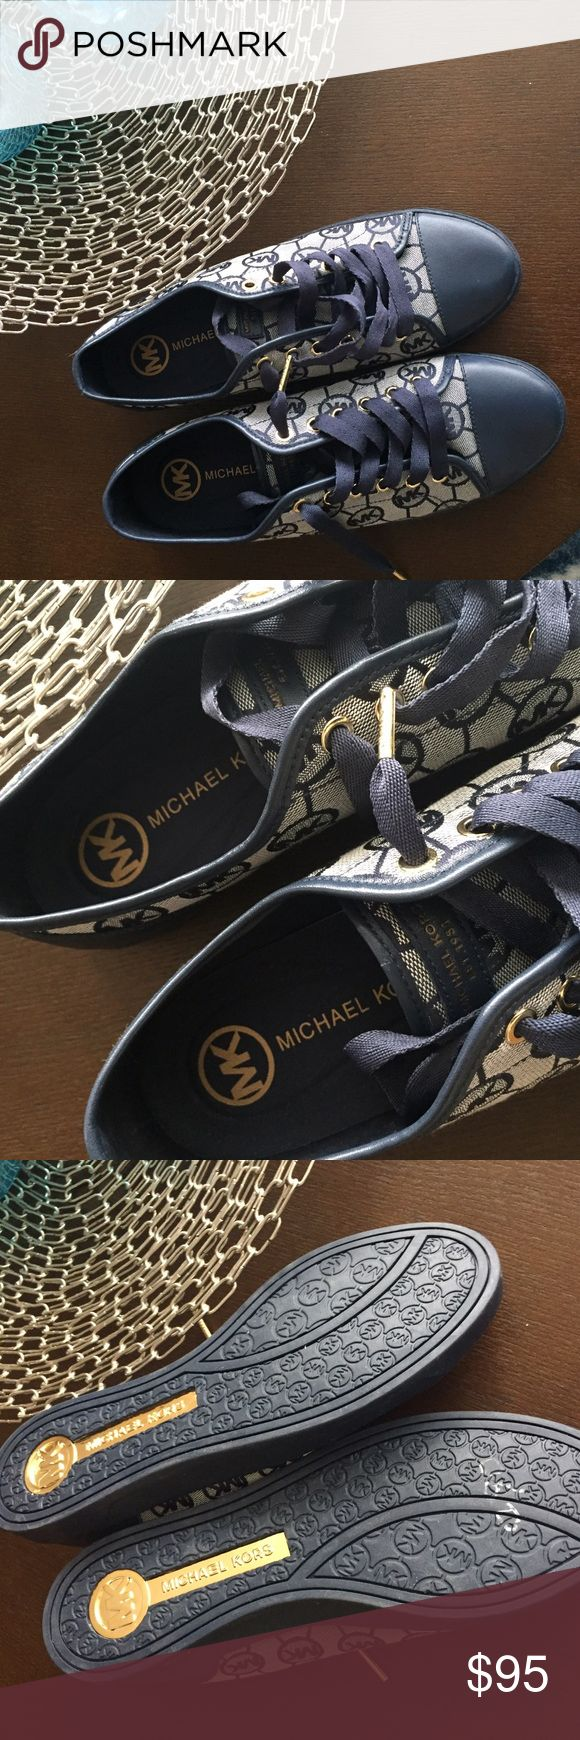 Michael Kors athletic shoes New without tags Michael Kors women's athletic shoes size 9.5 Michael Kors Shoes Athletic Shoes